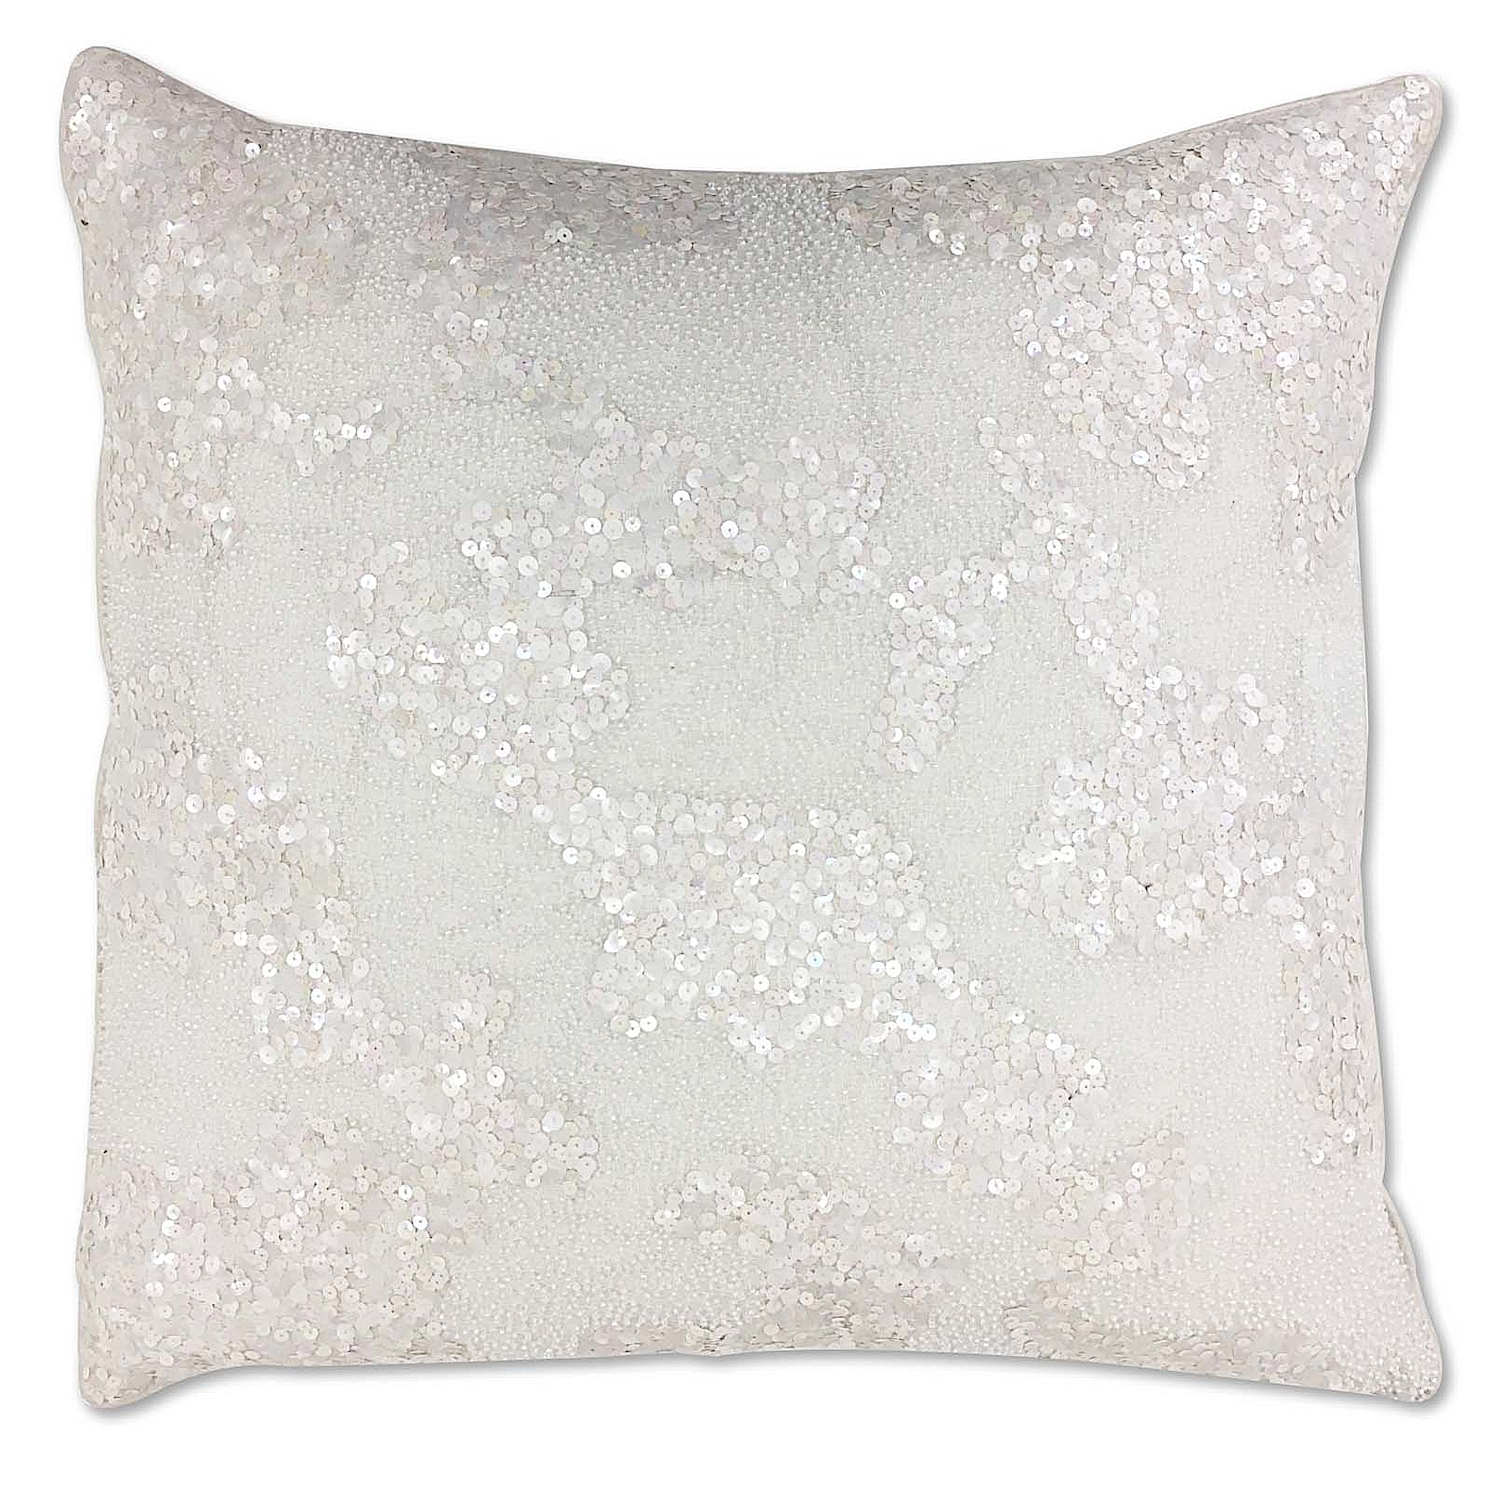 Cloud9 Design 13331J Wt (22X22) Oslo Decorative Pillow